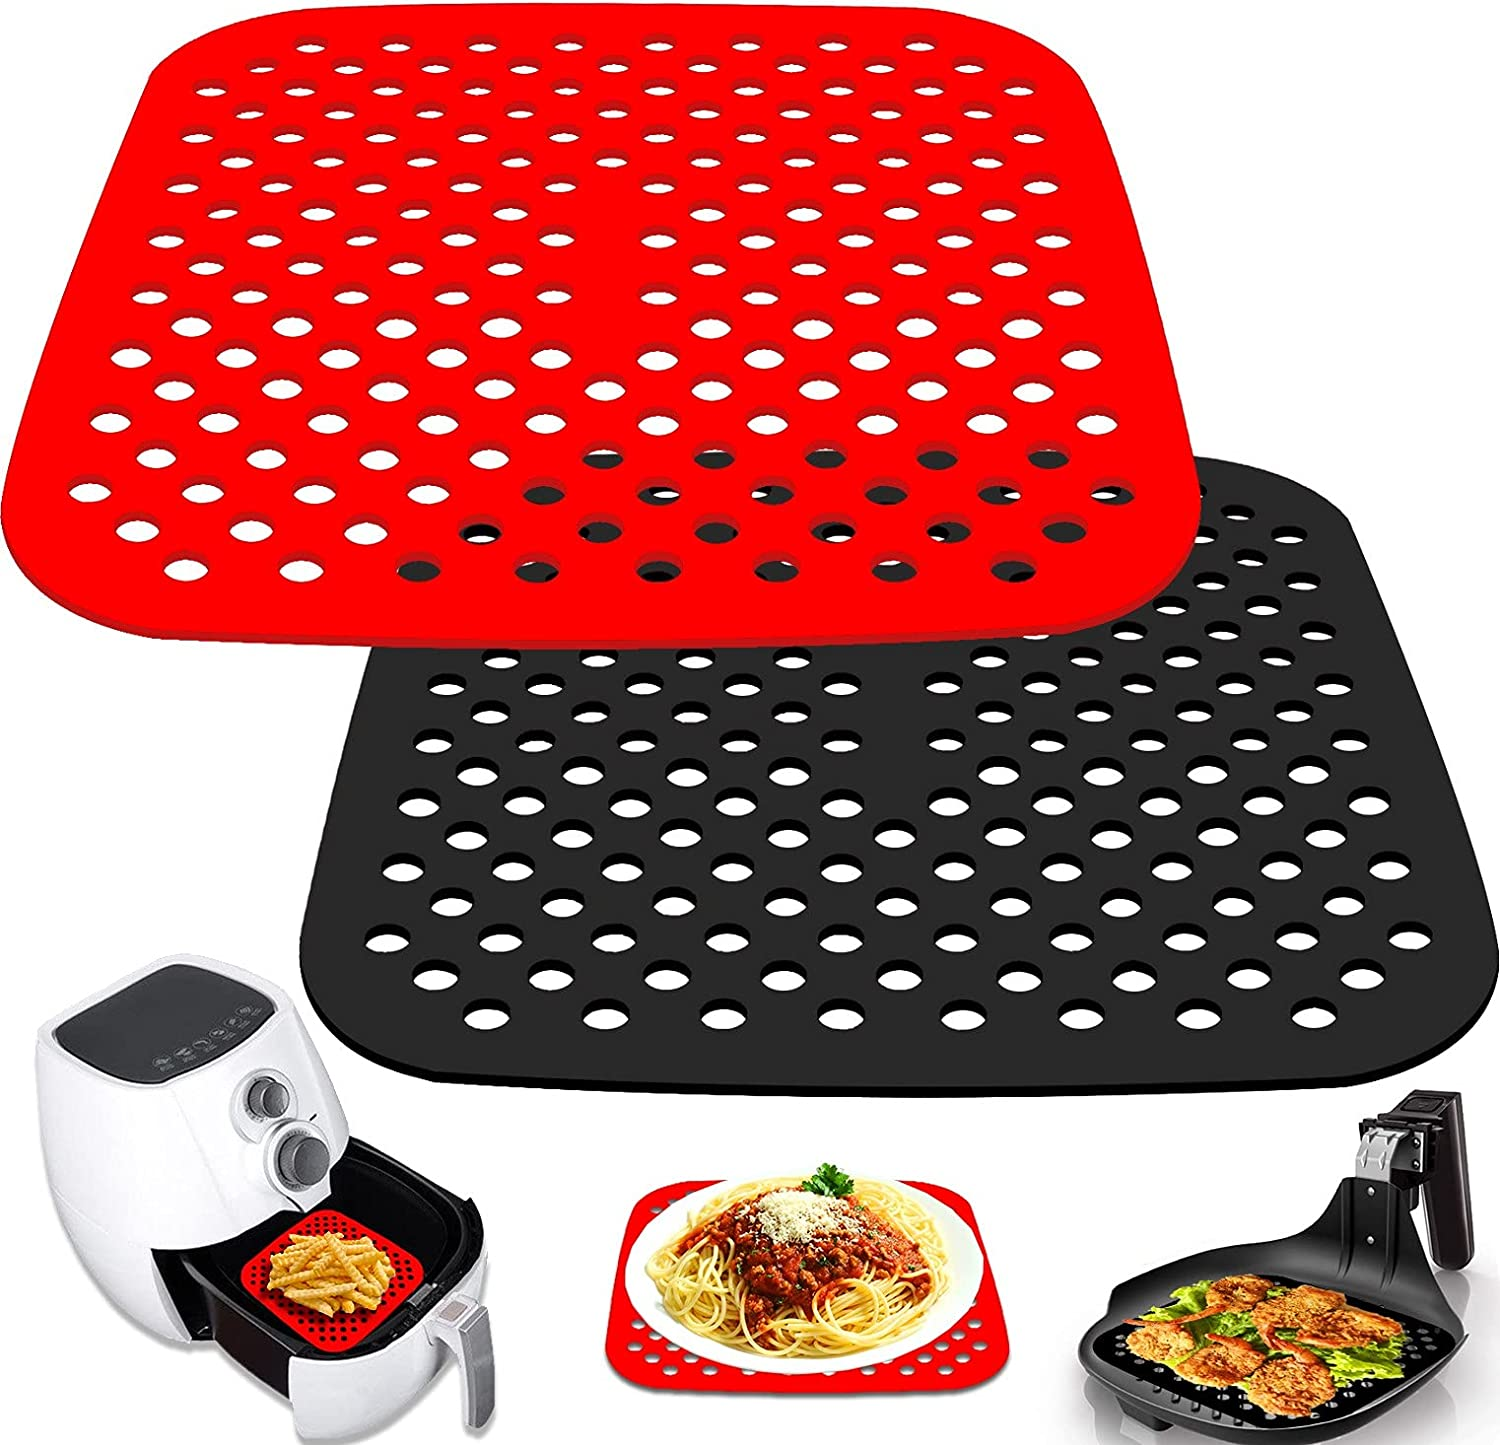 Liangzhou 2 Pack Reusable Air Fryer Liners, 7.5 Inch or 8.5 Inch Square Non-Stick Air Fryer Mat, Perforated Air Fryer Silicone Accessories, BPA Free and Easy to Clean